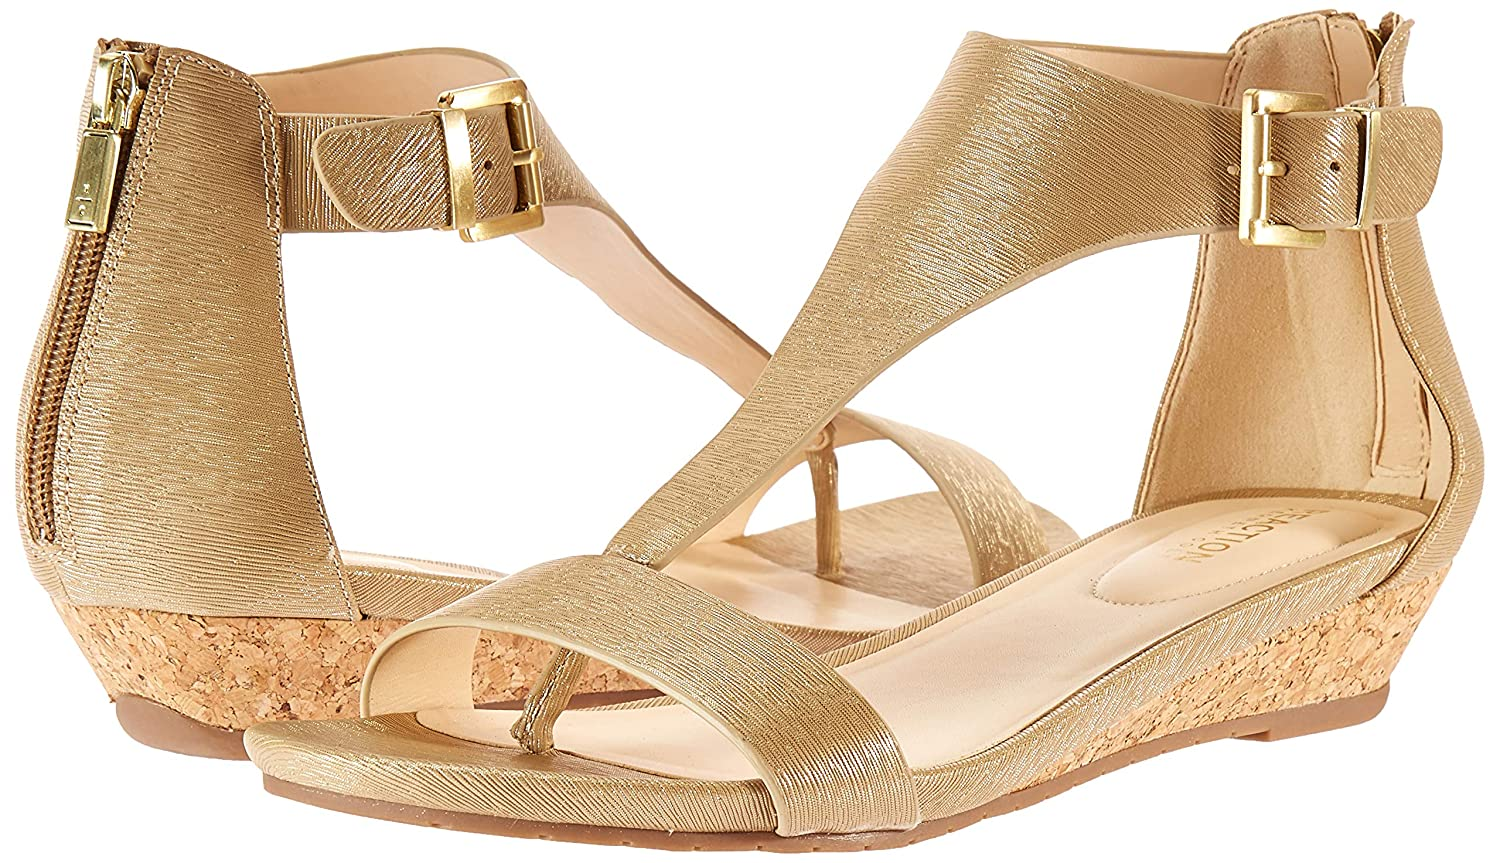 Kenneth Cole REACTION Womens Great Gal T-Strap Low Wedge Sandal Wedge Sandal